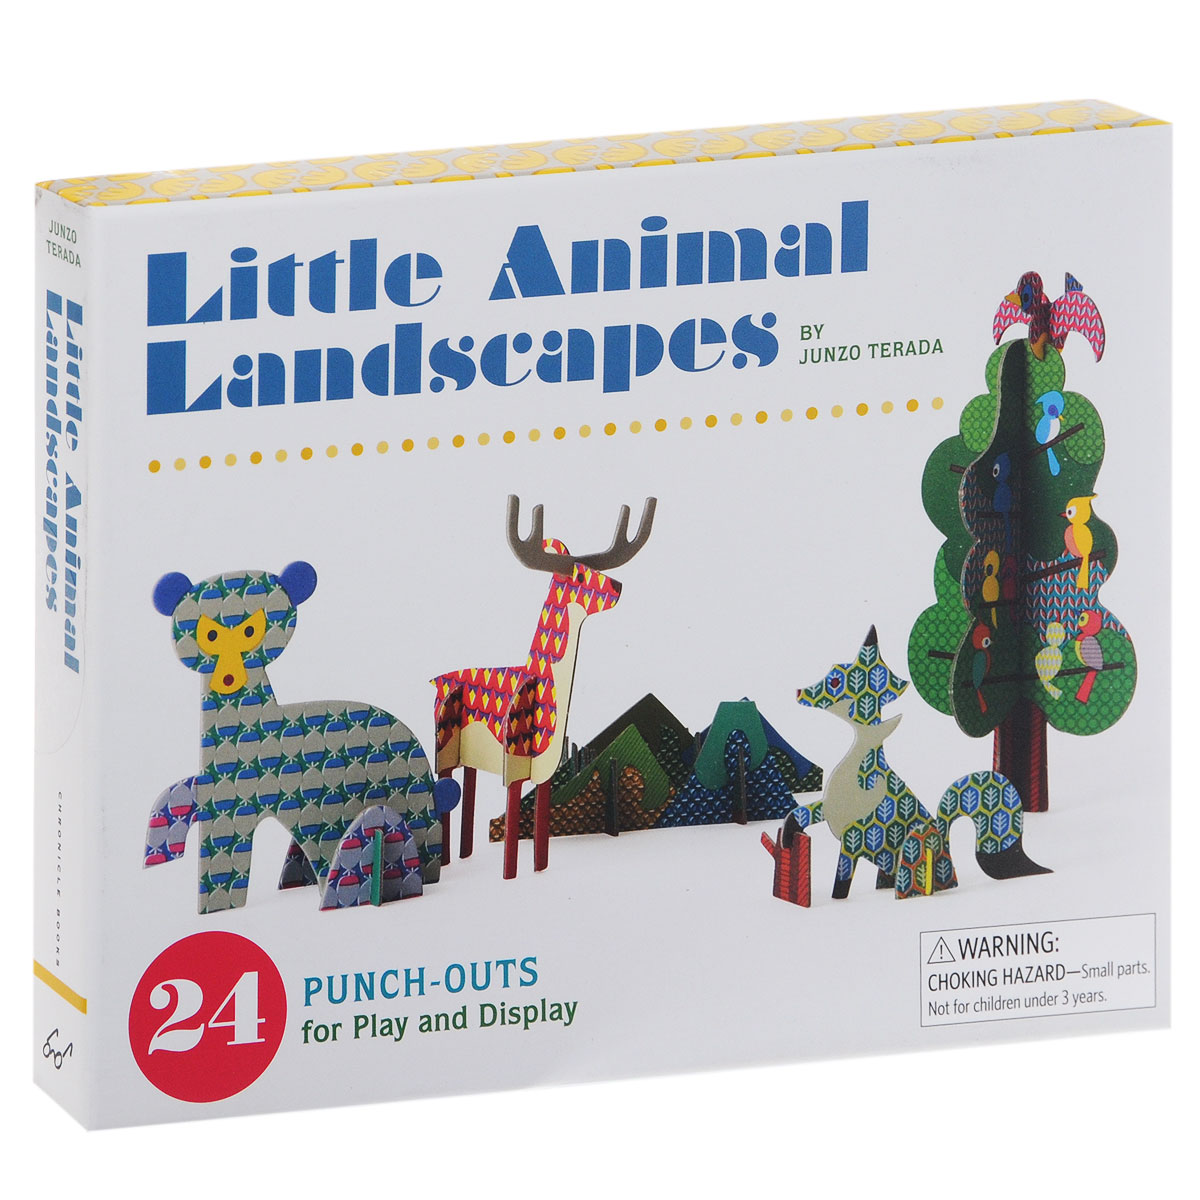 Little Animal Landscapes: 24 Punch-Outs for Play and Display christmas envelopes sticker and pop up cards set 1set 10pcs cards 10pcs envelopes 1 sheet seal sticker